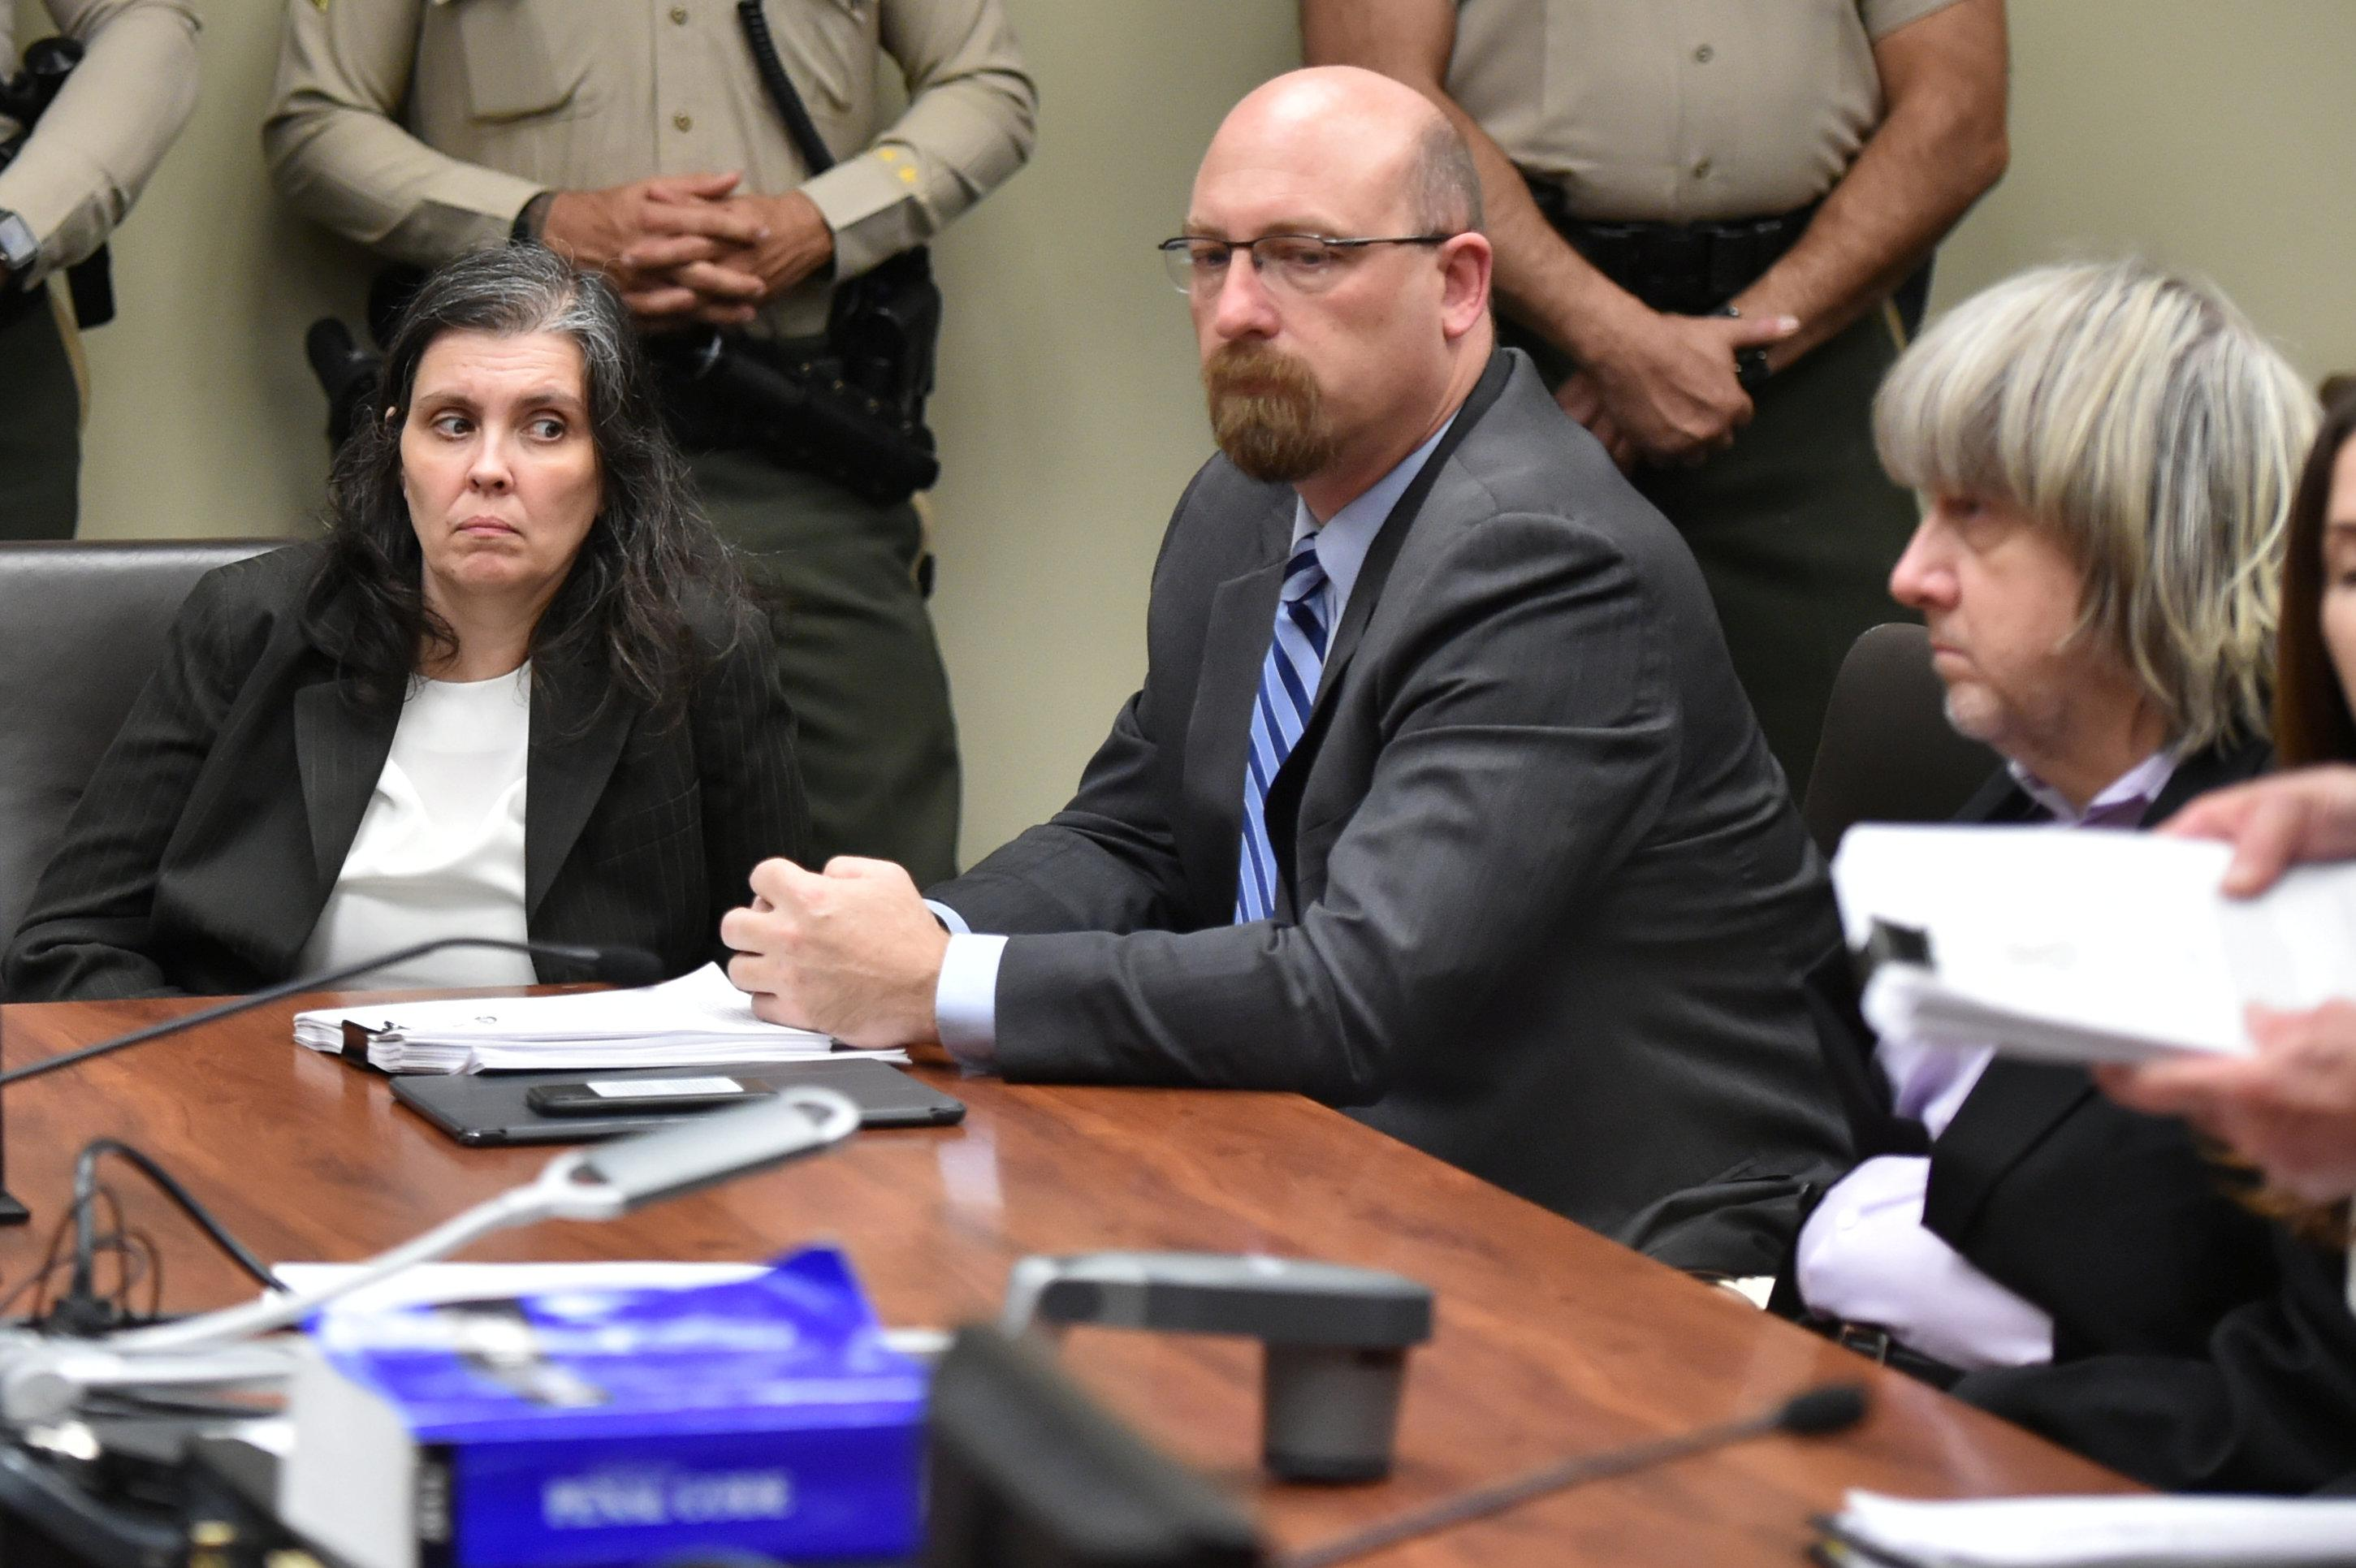 David Turpin (R) and Louise Turpin (L) appear in court for their arraignment in Riverside, California, U.S. January 18, 2018. Frederic J. Brown/Pool